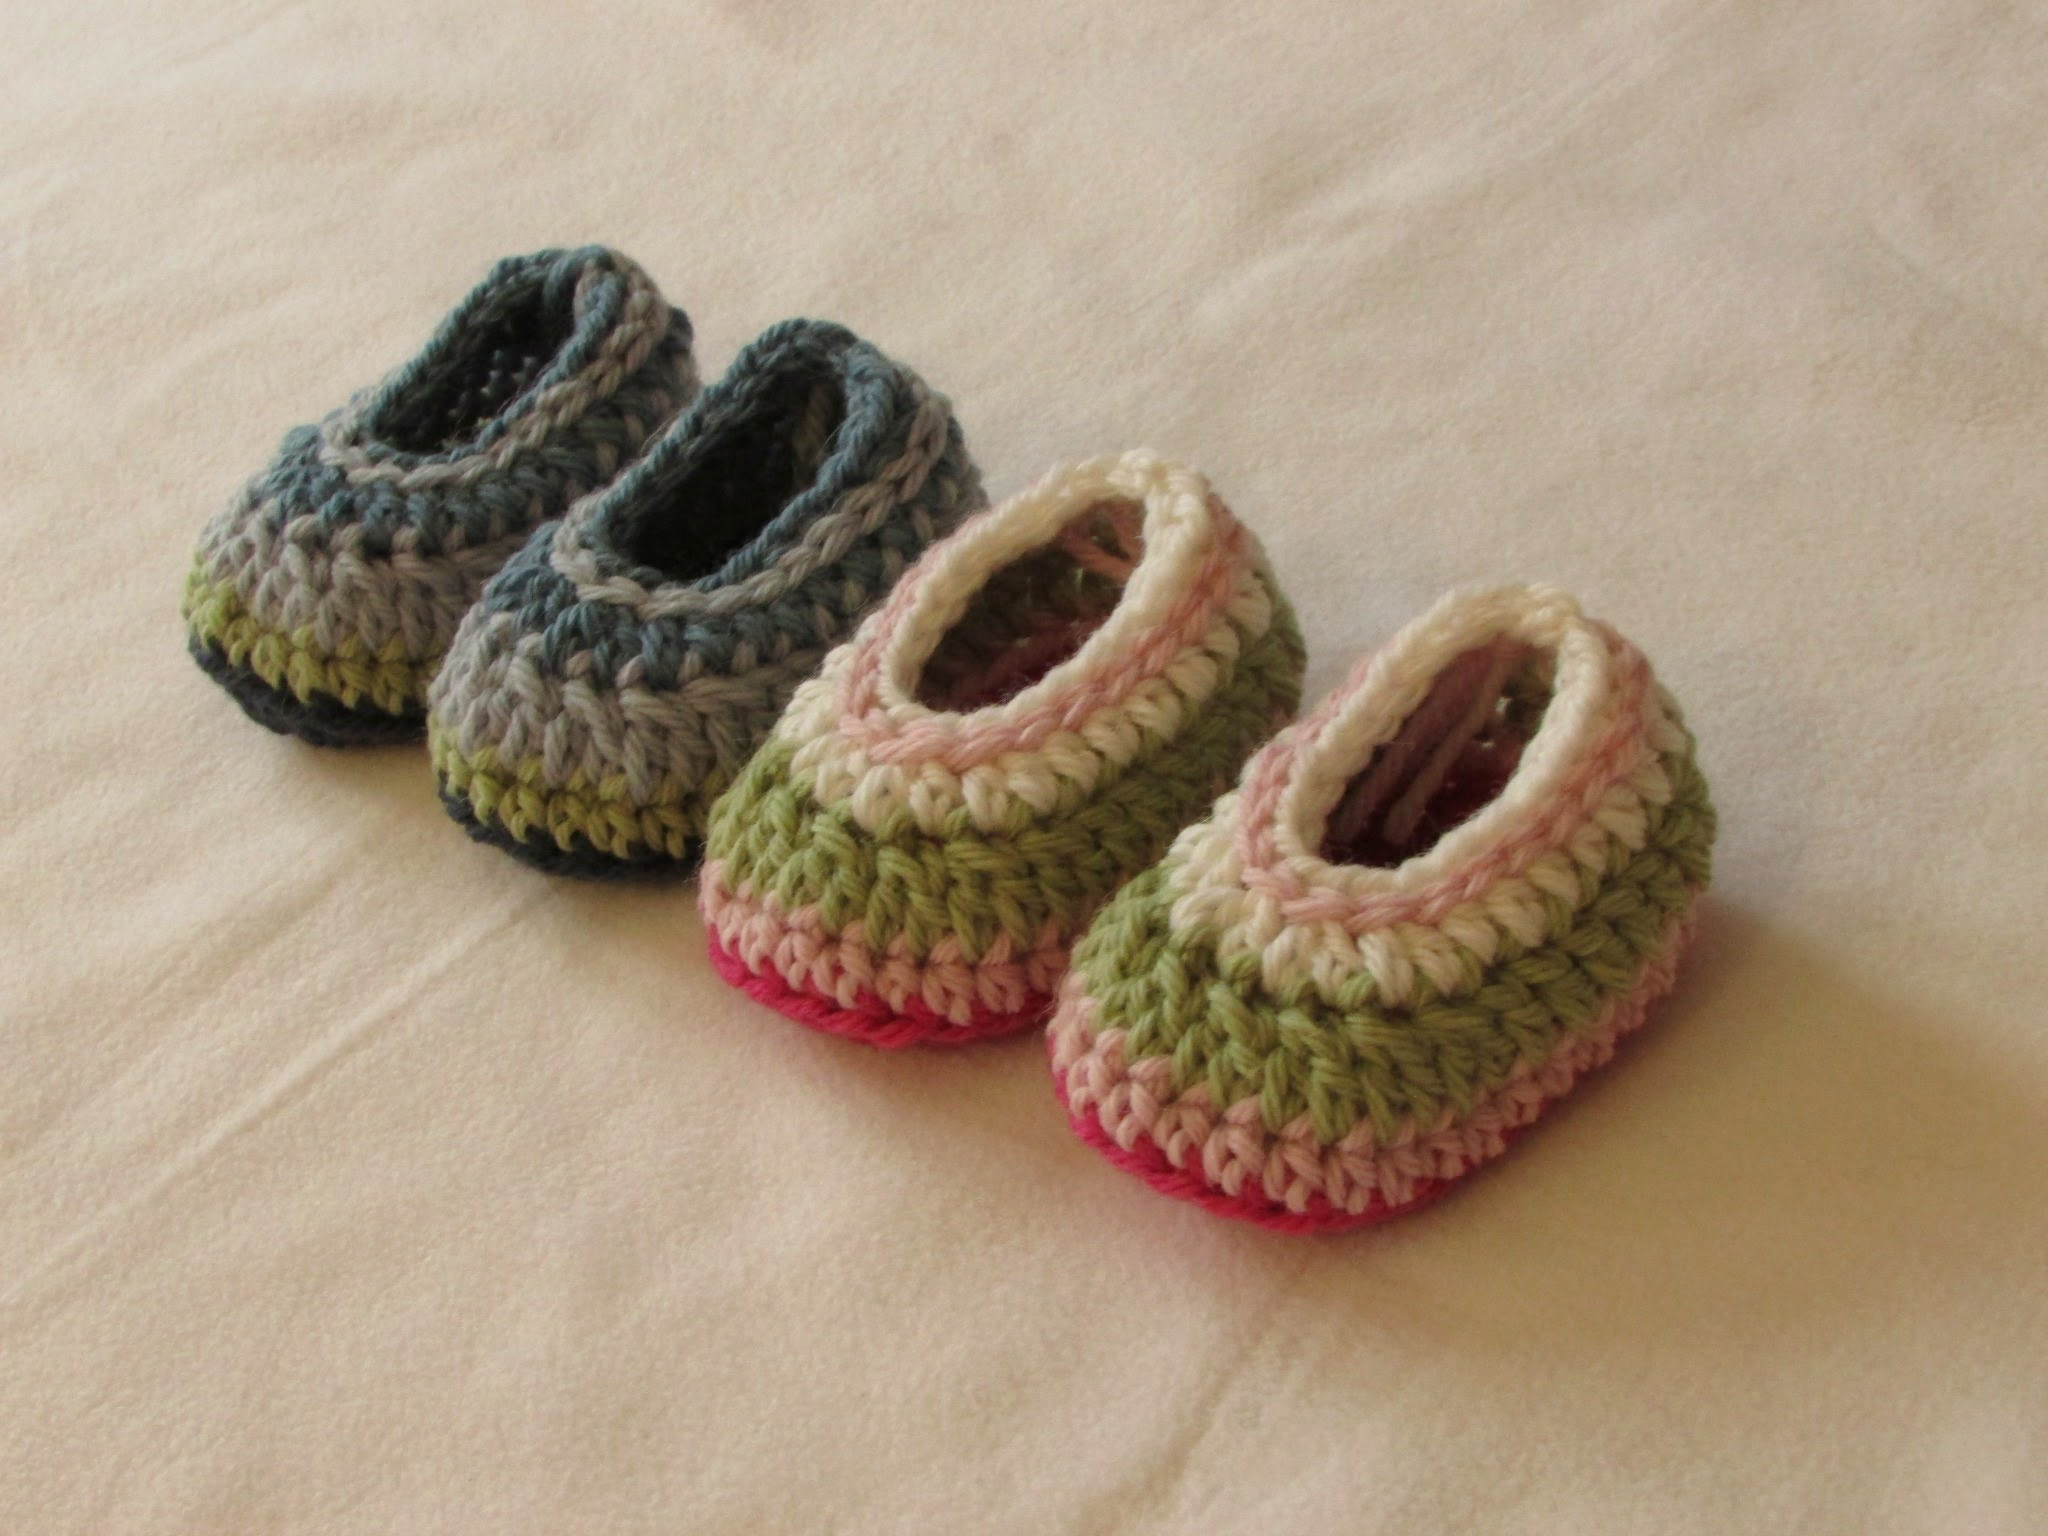 Best Of Crochet Slippers for Baby Crochet Baby Slippers Of Marvelous 50 Images Crochet Baby Slippers